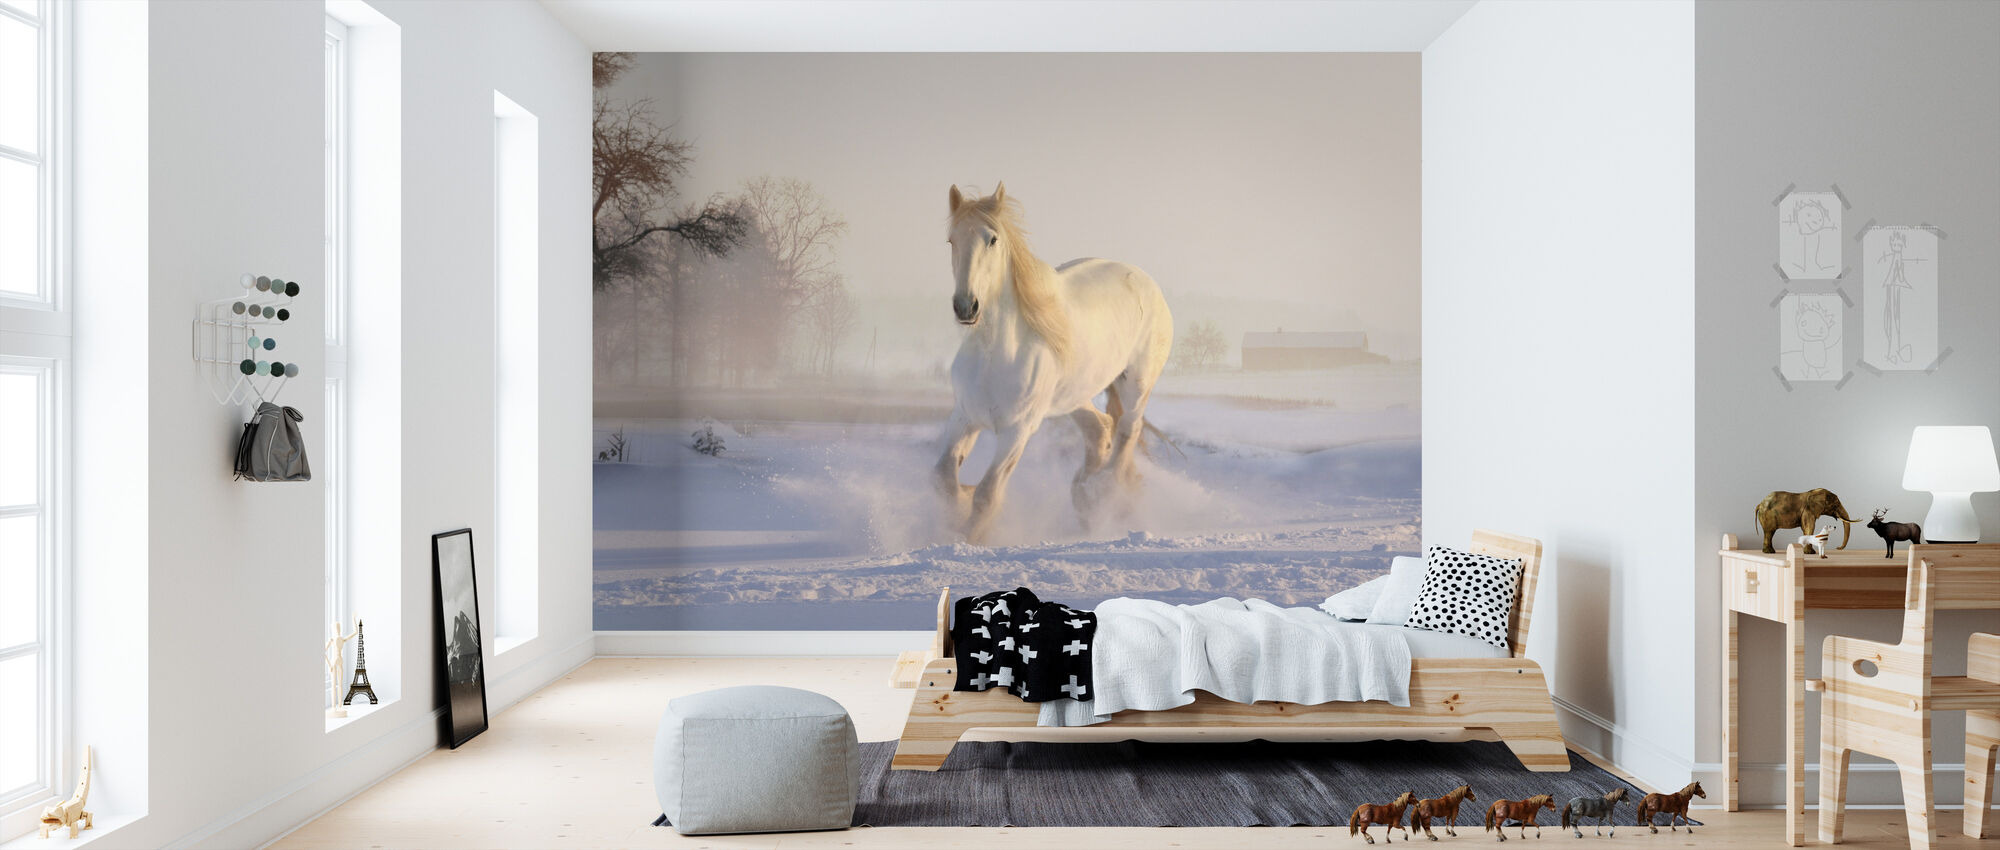 White Horse - Wallpaper - Kids Room